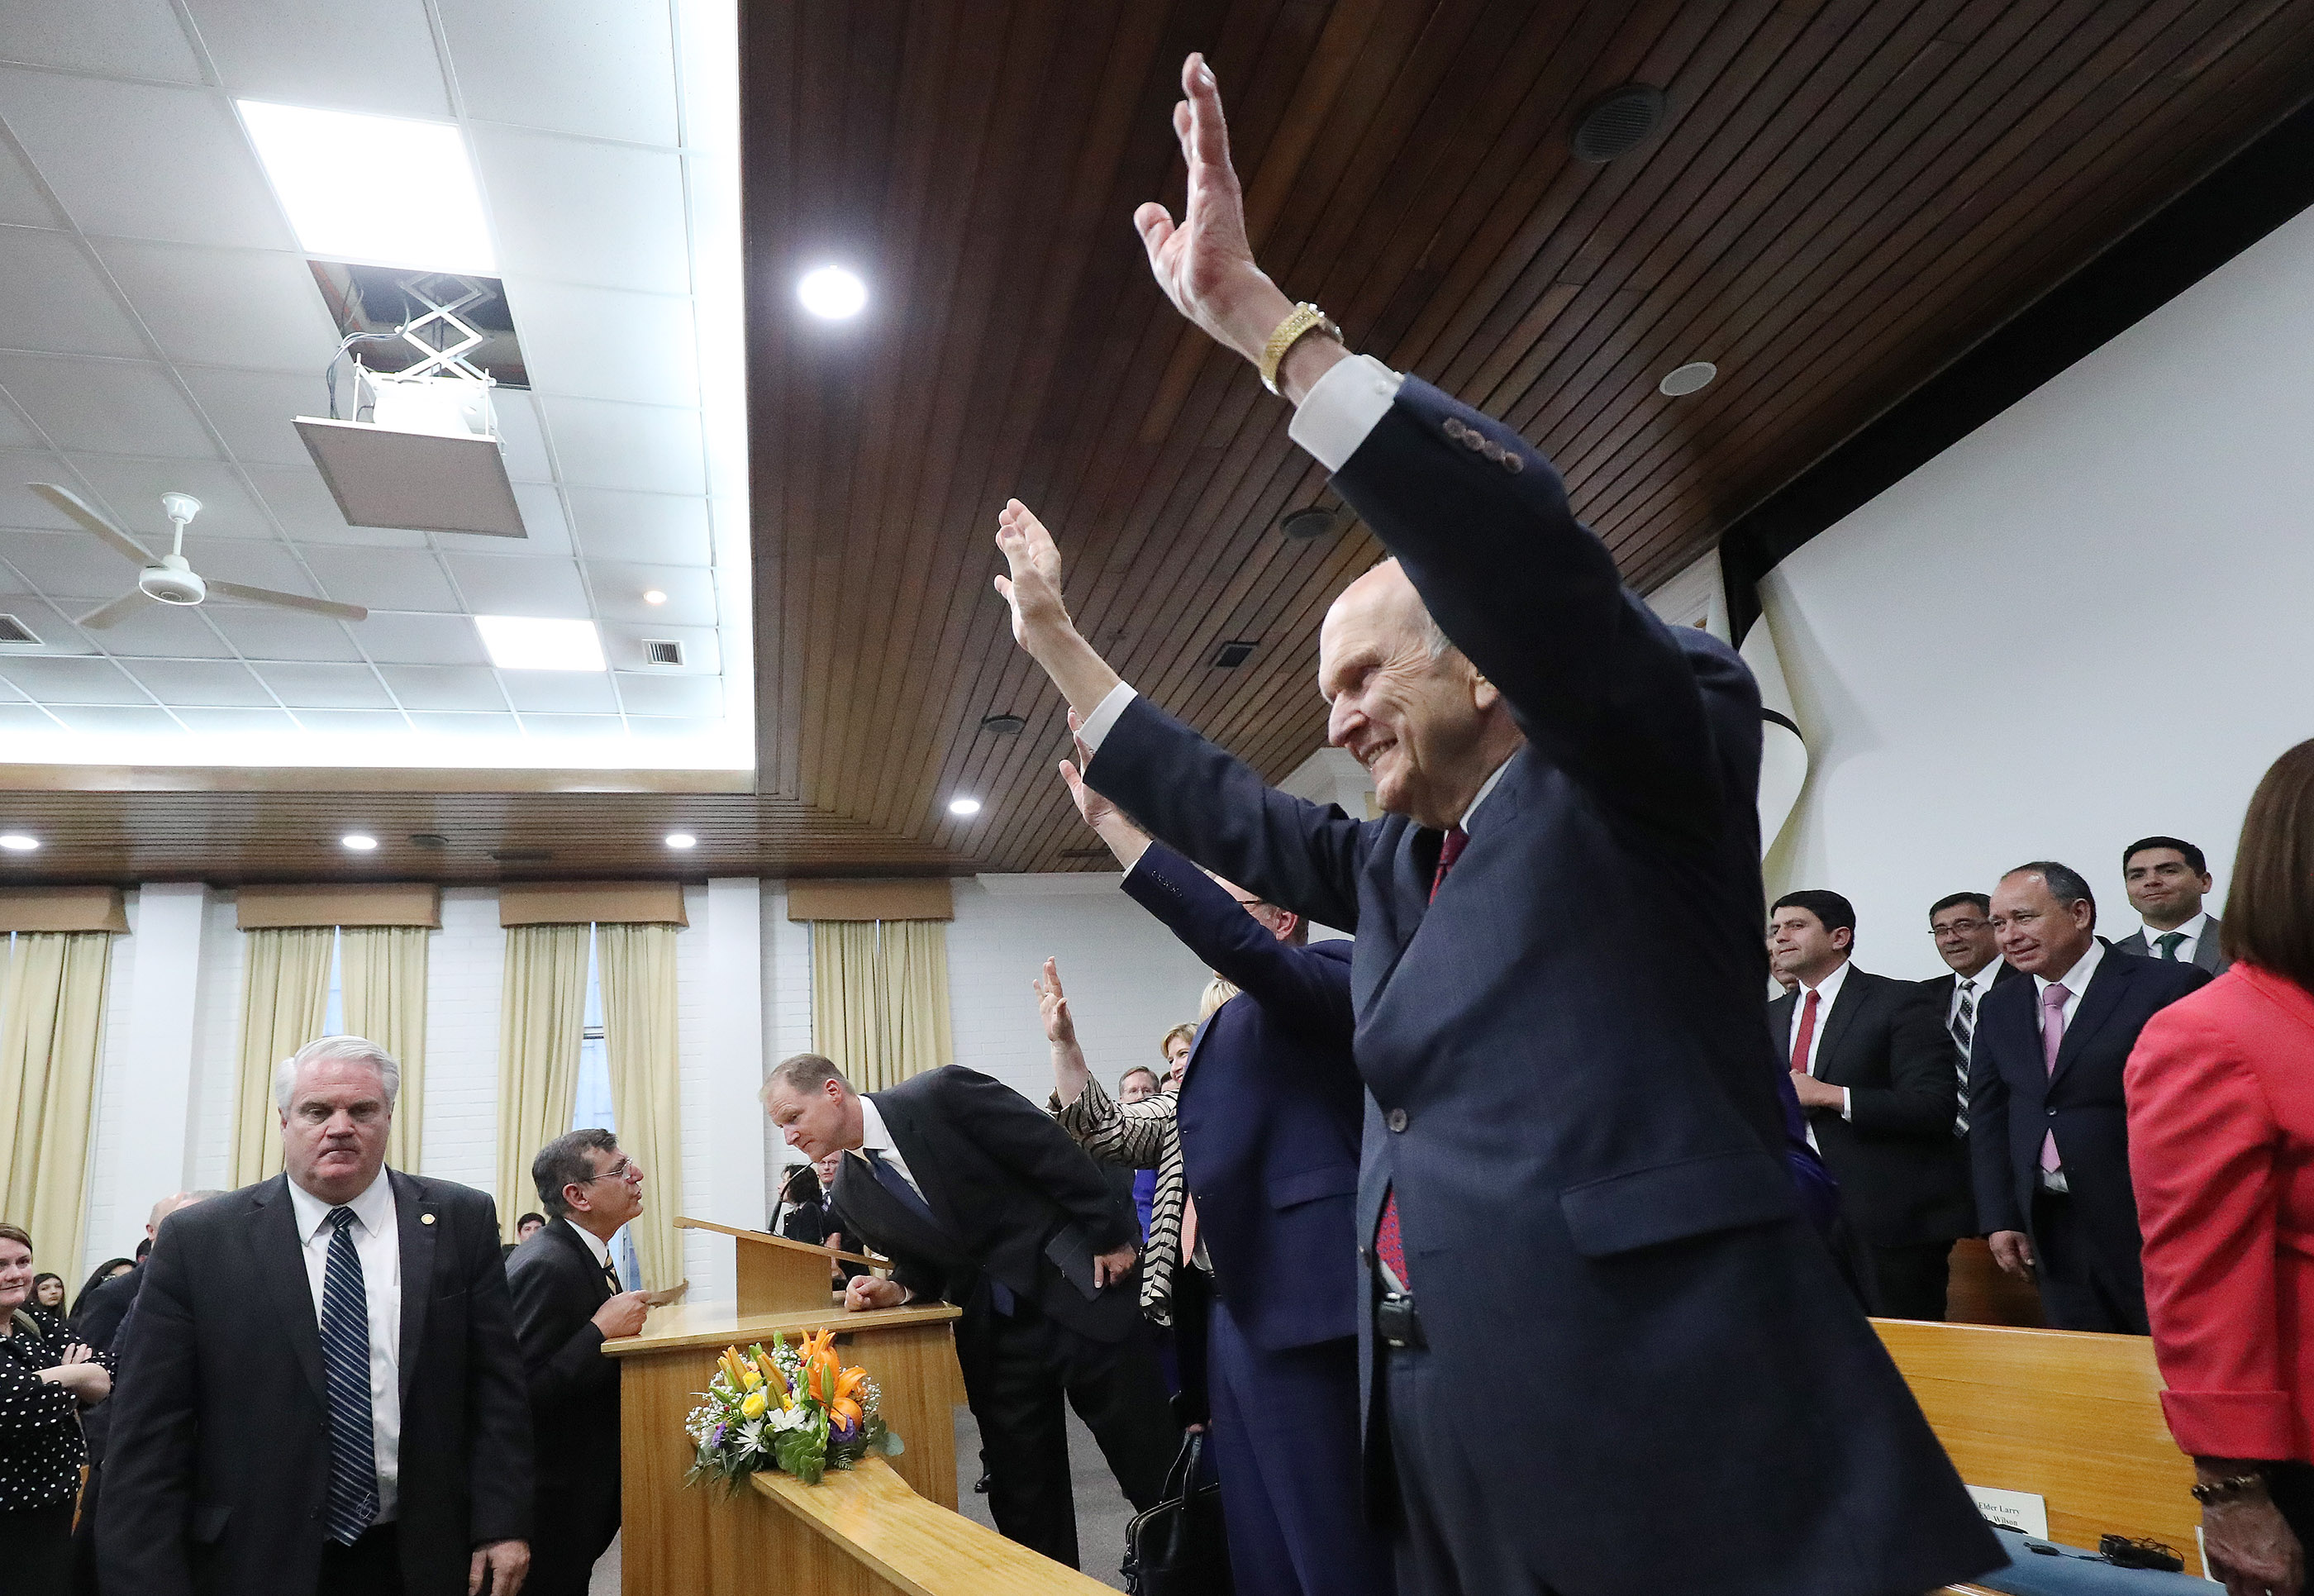 President Russell M. Nelson of The Church of Jesus Christ of Latter-day Saints waves to attendees after a youth devotional in Concepcion, Chile on Saturday, Oct. 27, 2018.